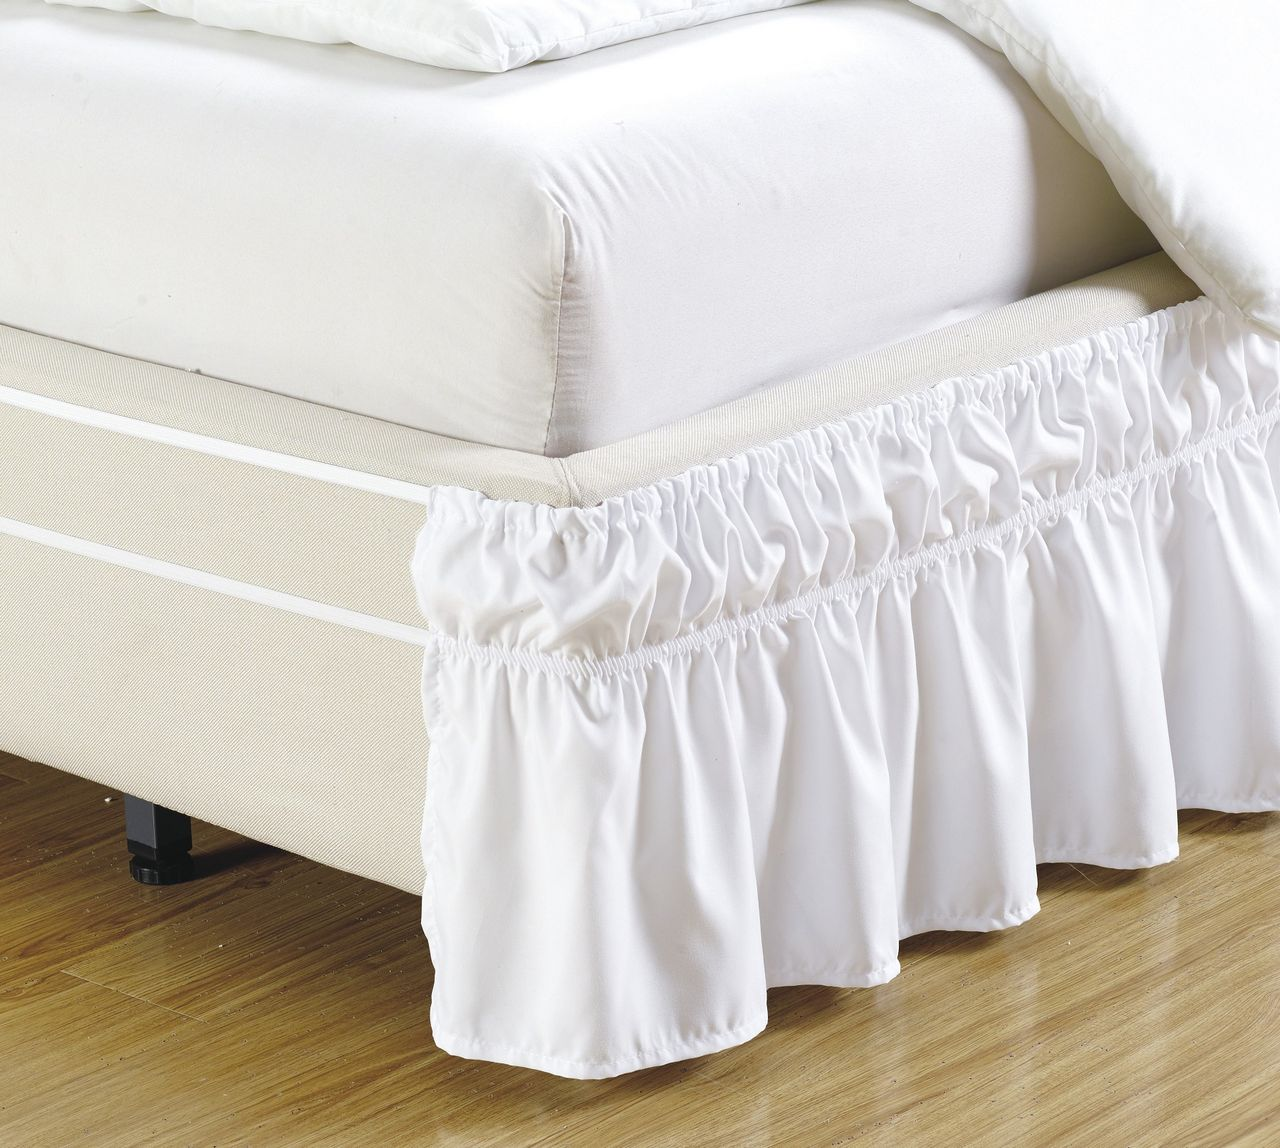 Image of: White Ruffle Bed Skirt Model